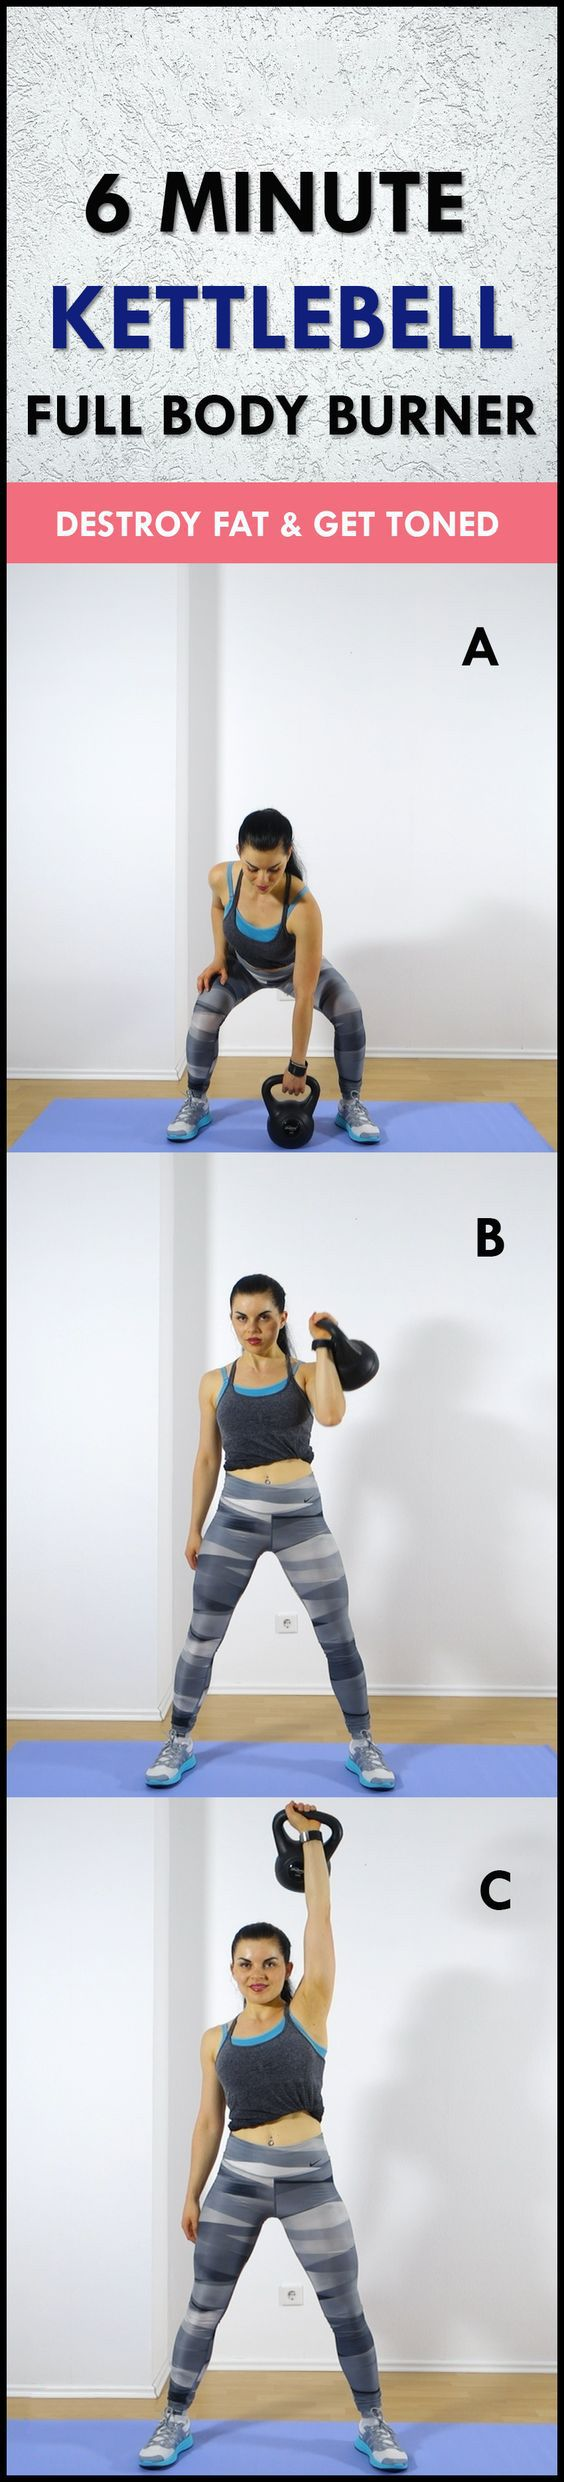 6 Minute Kettlebell Workout Posted By Advancedweightlosstips Com Full Body Strength Training Routine Kettlebell Workout Routines Kettlebell Workout